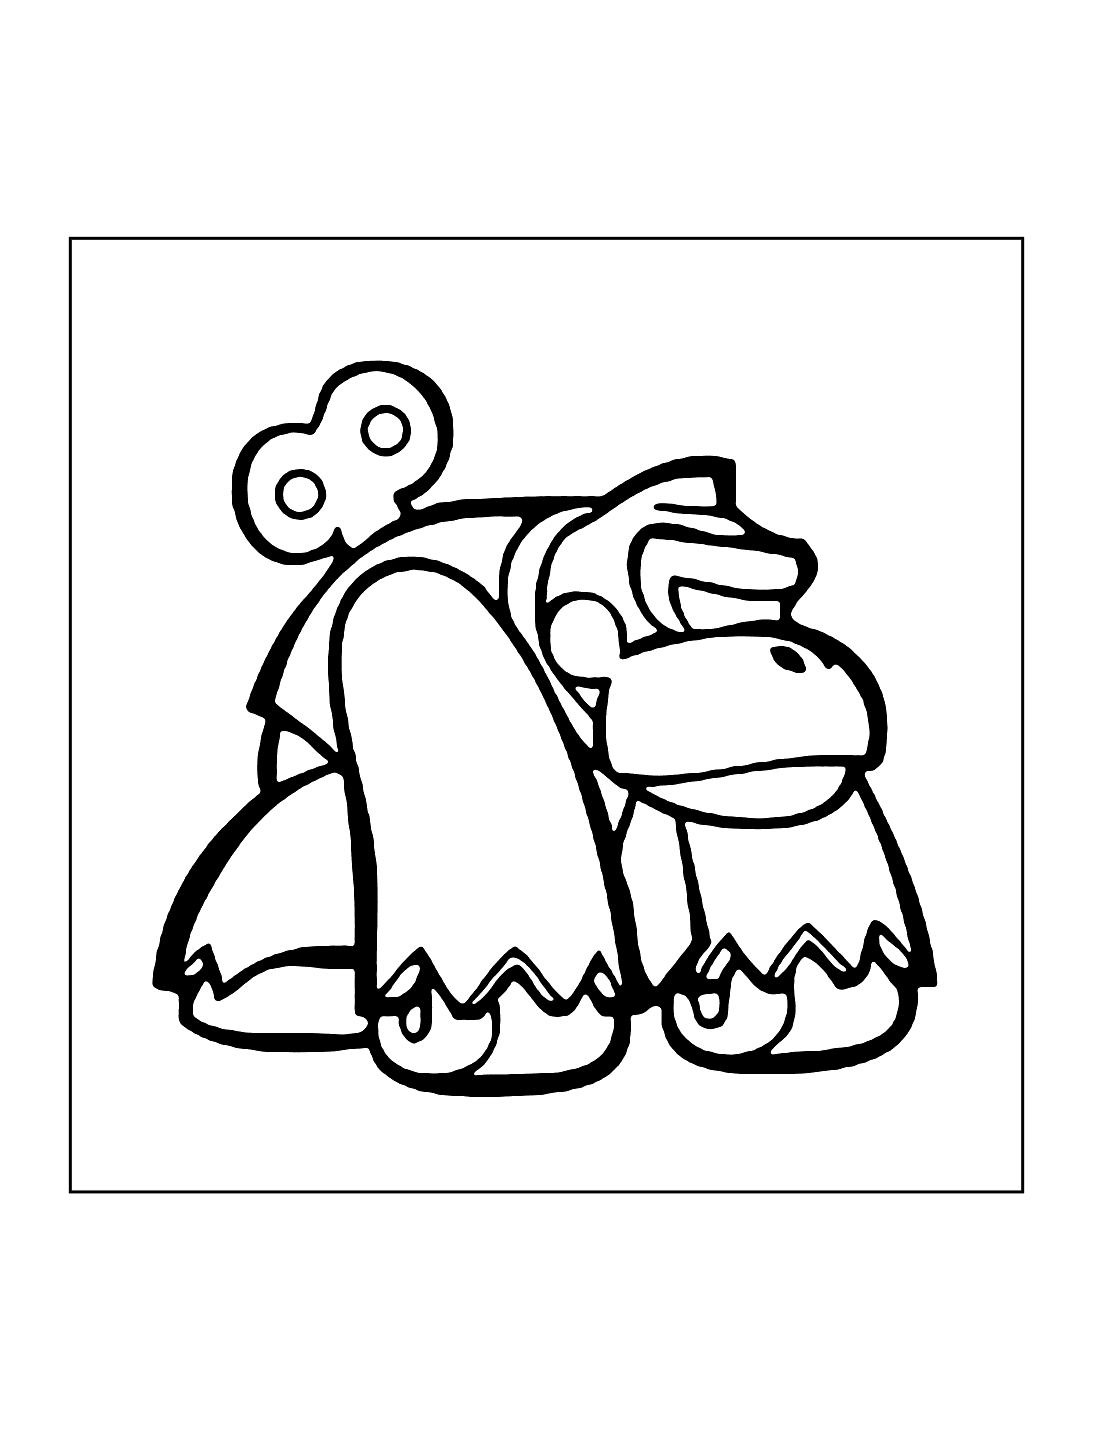 Donkey Kong Wind Up Toy Coloring Page